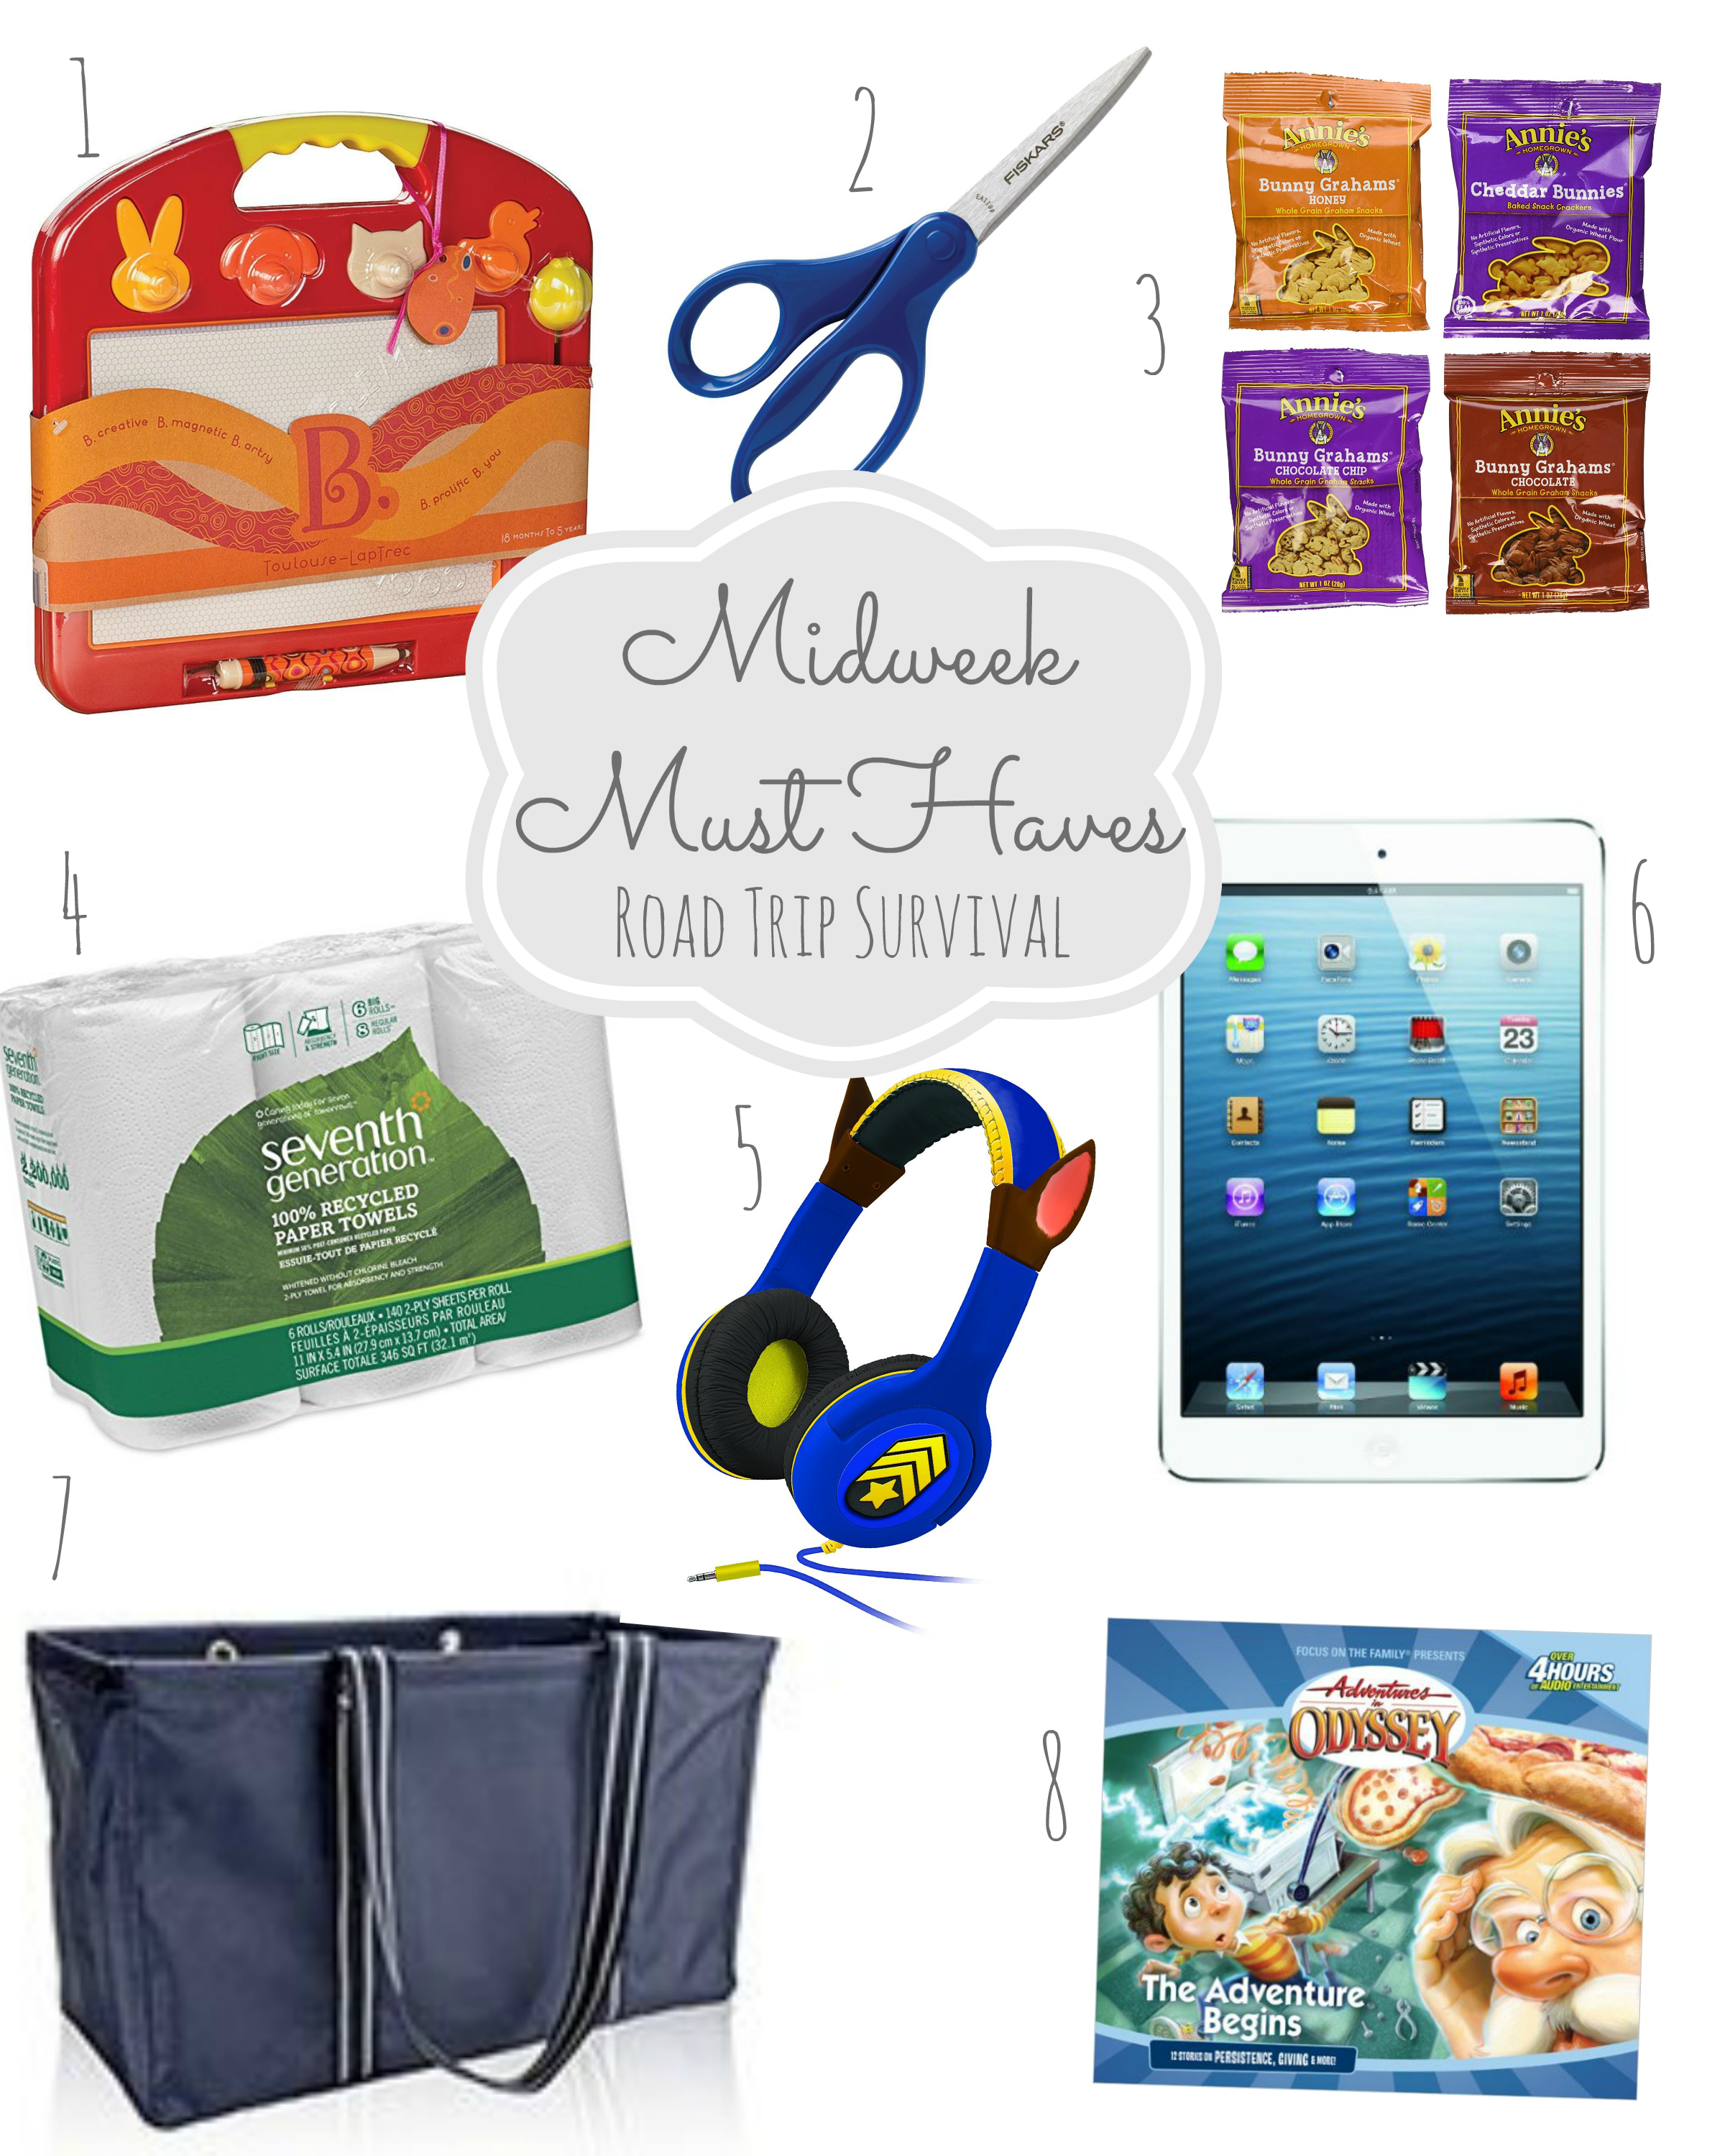 Midweek Must Haves Road Trip Survival Gift Guide From the Family With Love